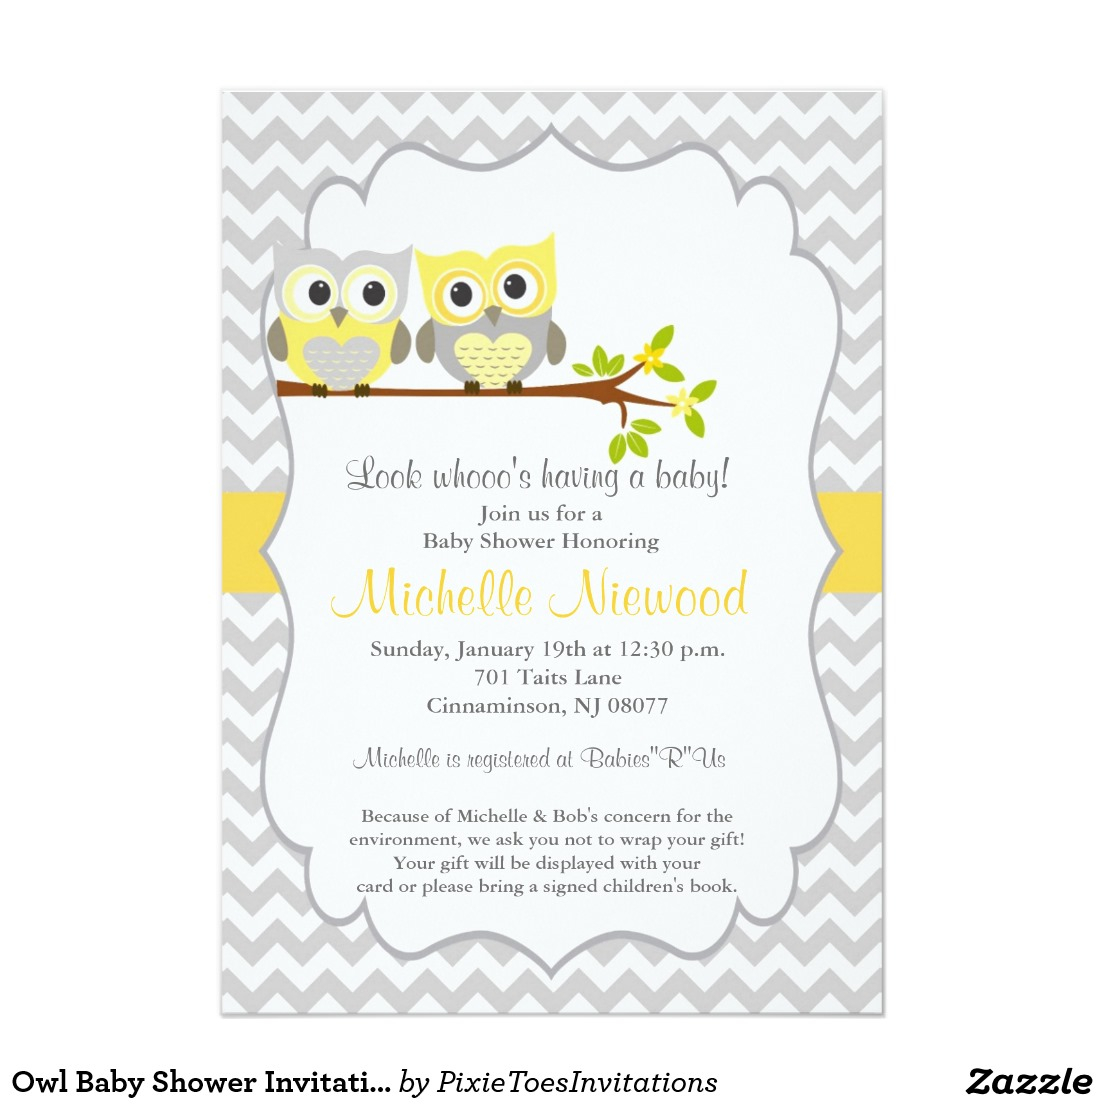 Owl Ba Shower Invitation White Grey Strippes With Yellow Color pertaining to sizing 1104 X 1104